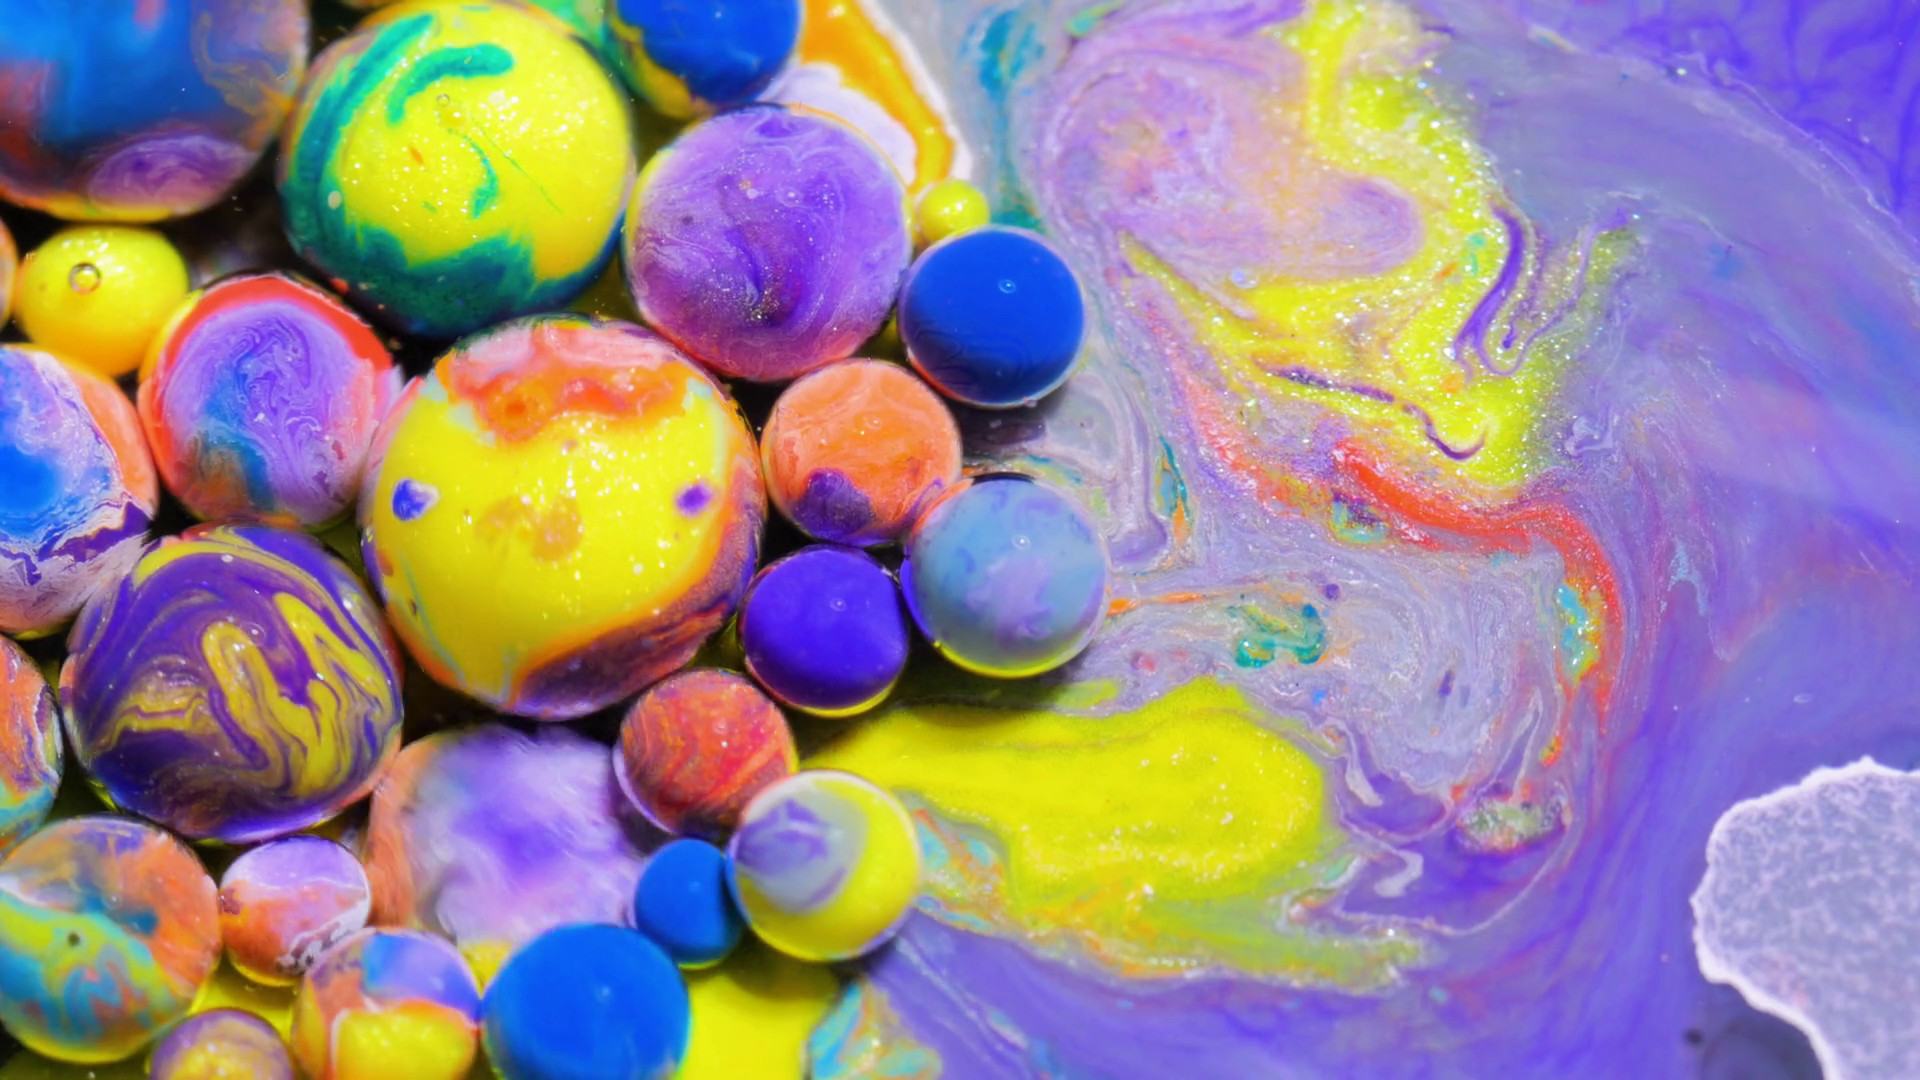 1920x1080 Slow Motion Vibrant Wallpaper 4K Chemical Reaction Splashing Multicolored  Background Red Green Blue Black Purple Orange And Yellow Macro Colorful  Bubbles ...